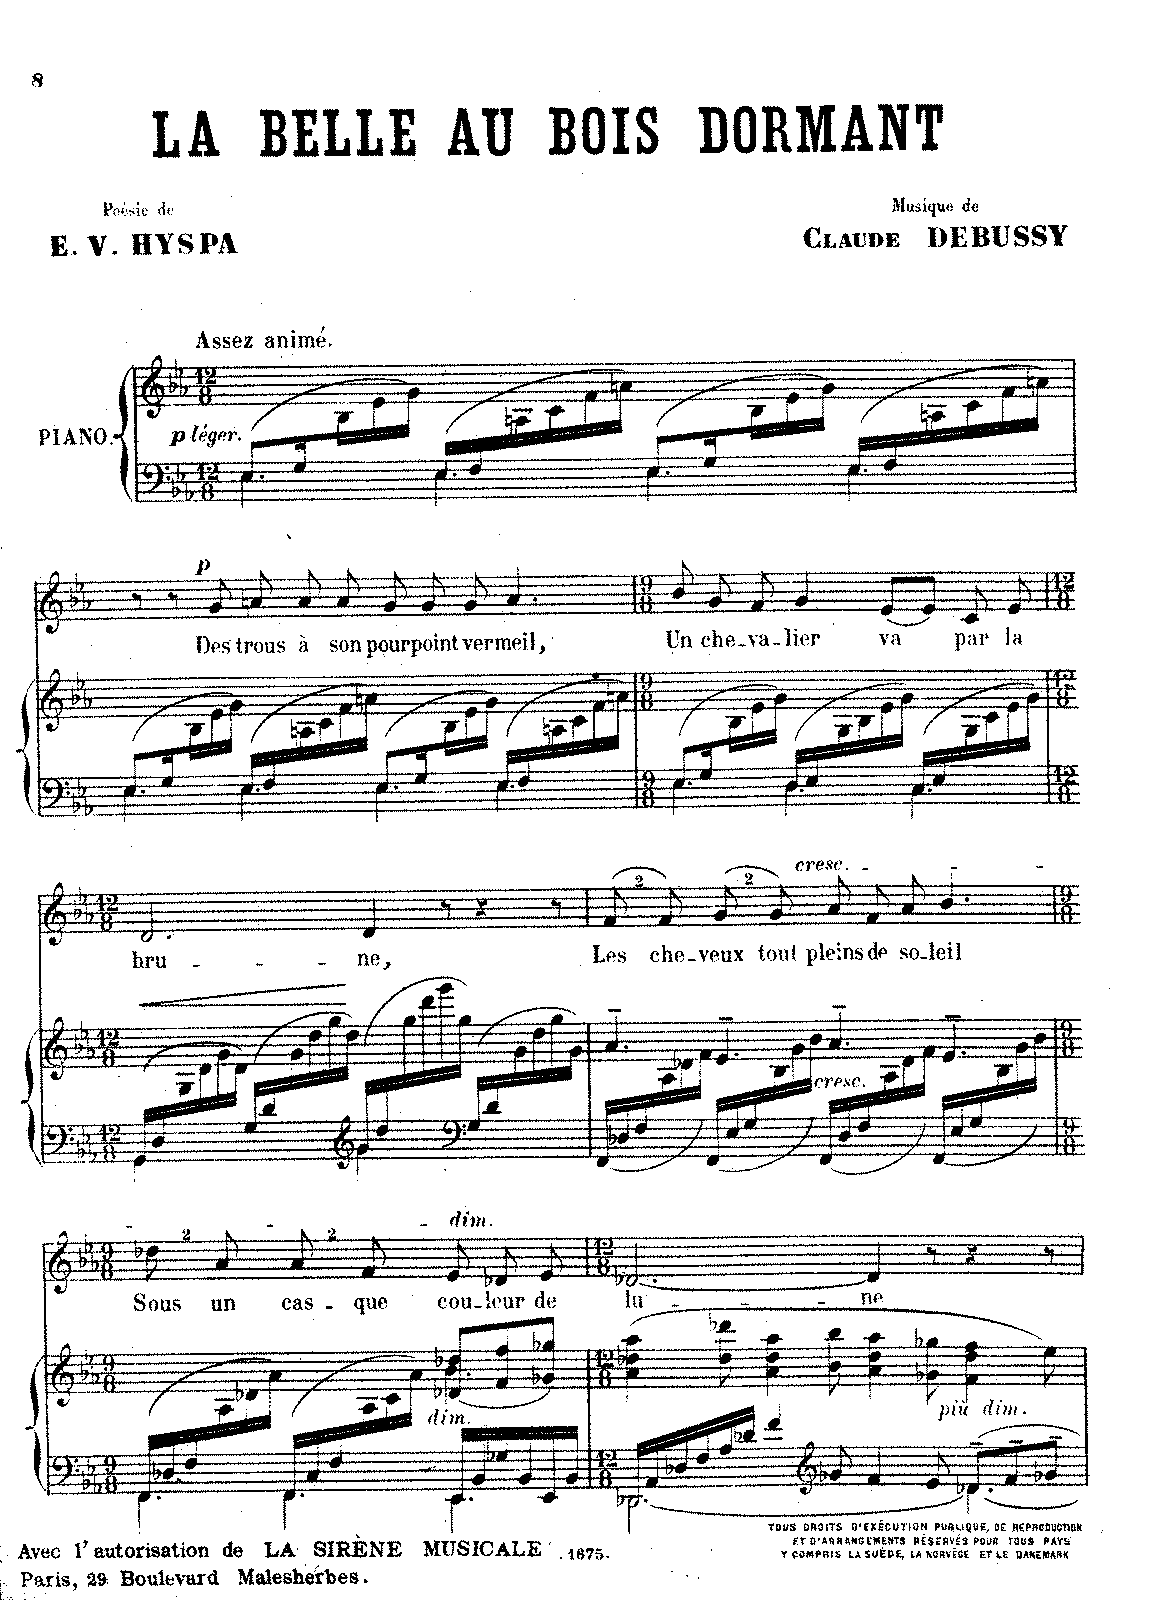 Debussy - La Belle au Bois Dormant (voice and piano).pdf